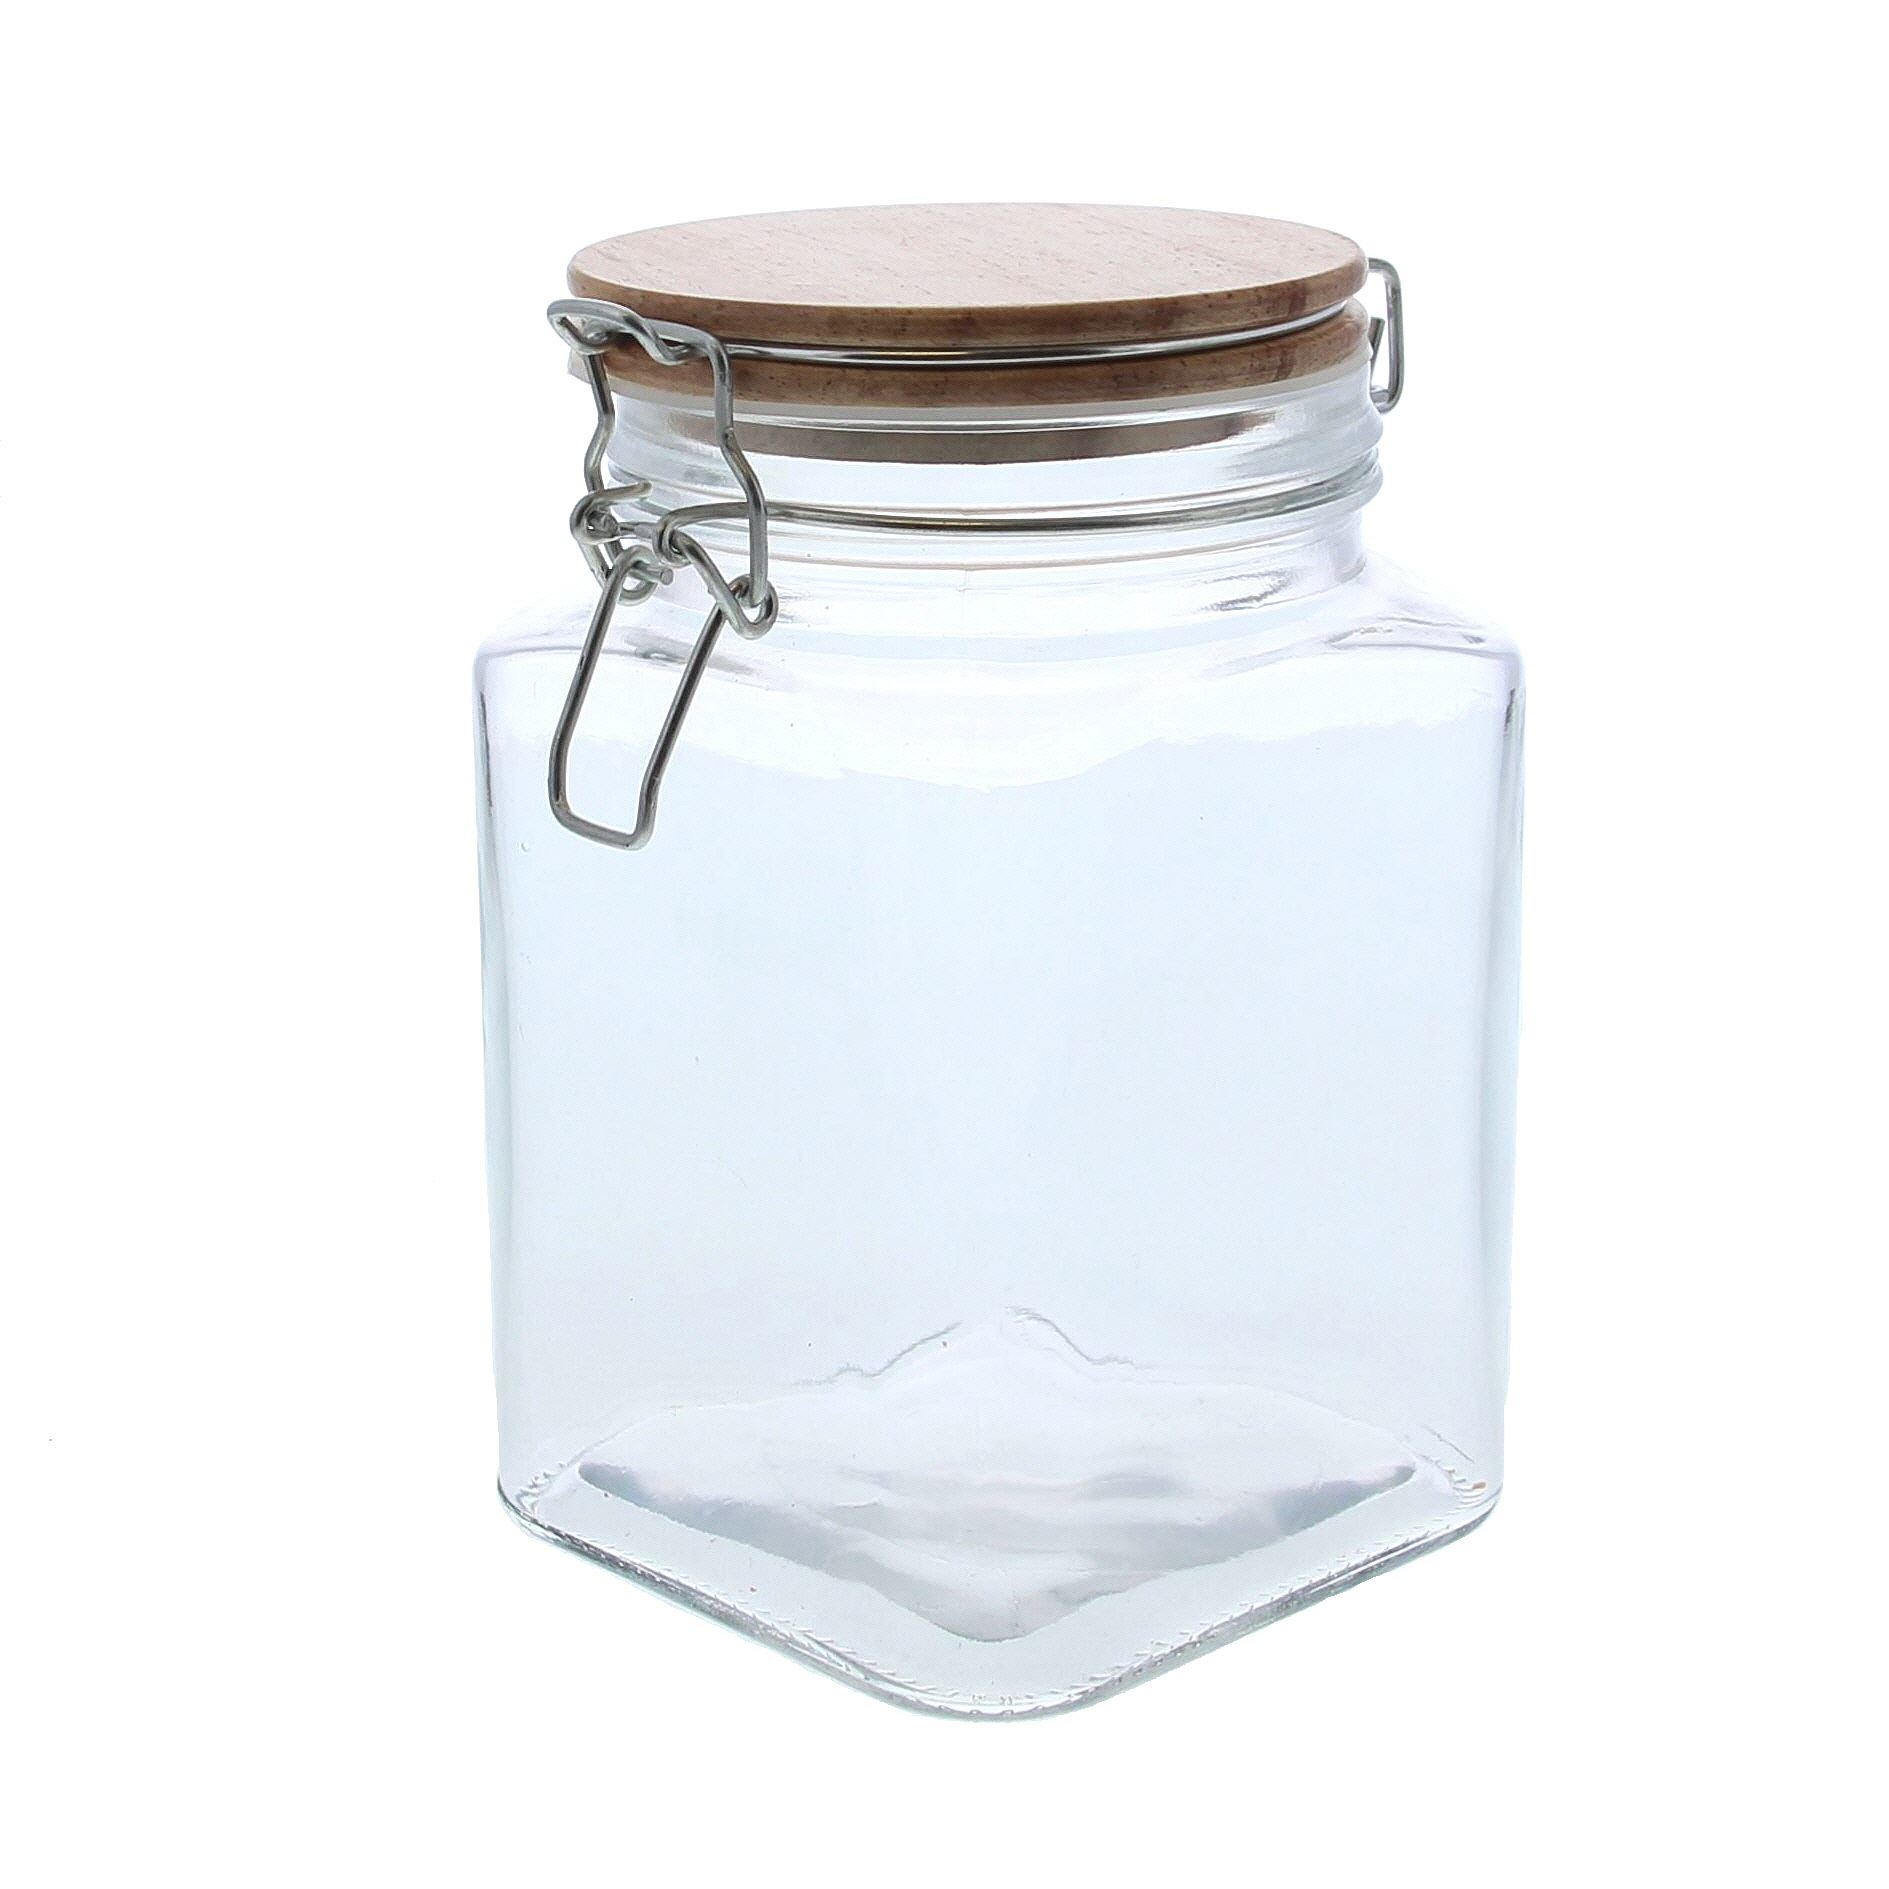 Square glass storage jar with  a wooden lid  - 110*110*170mm - 6 pieces